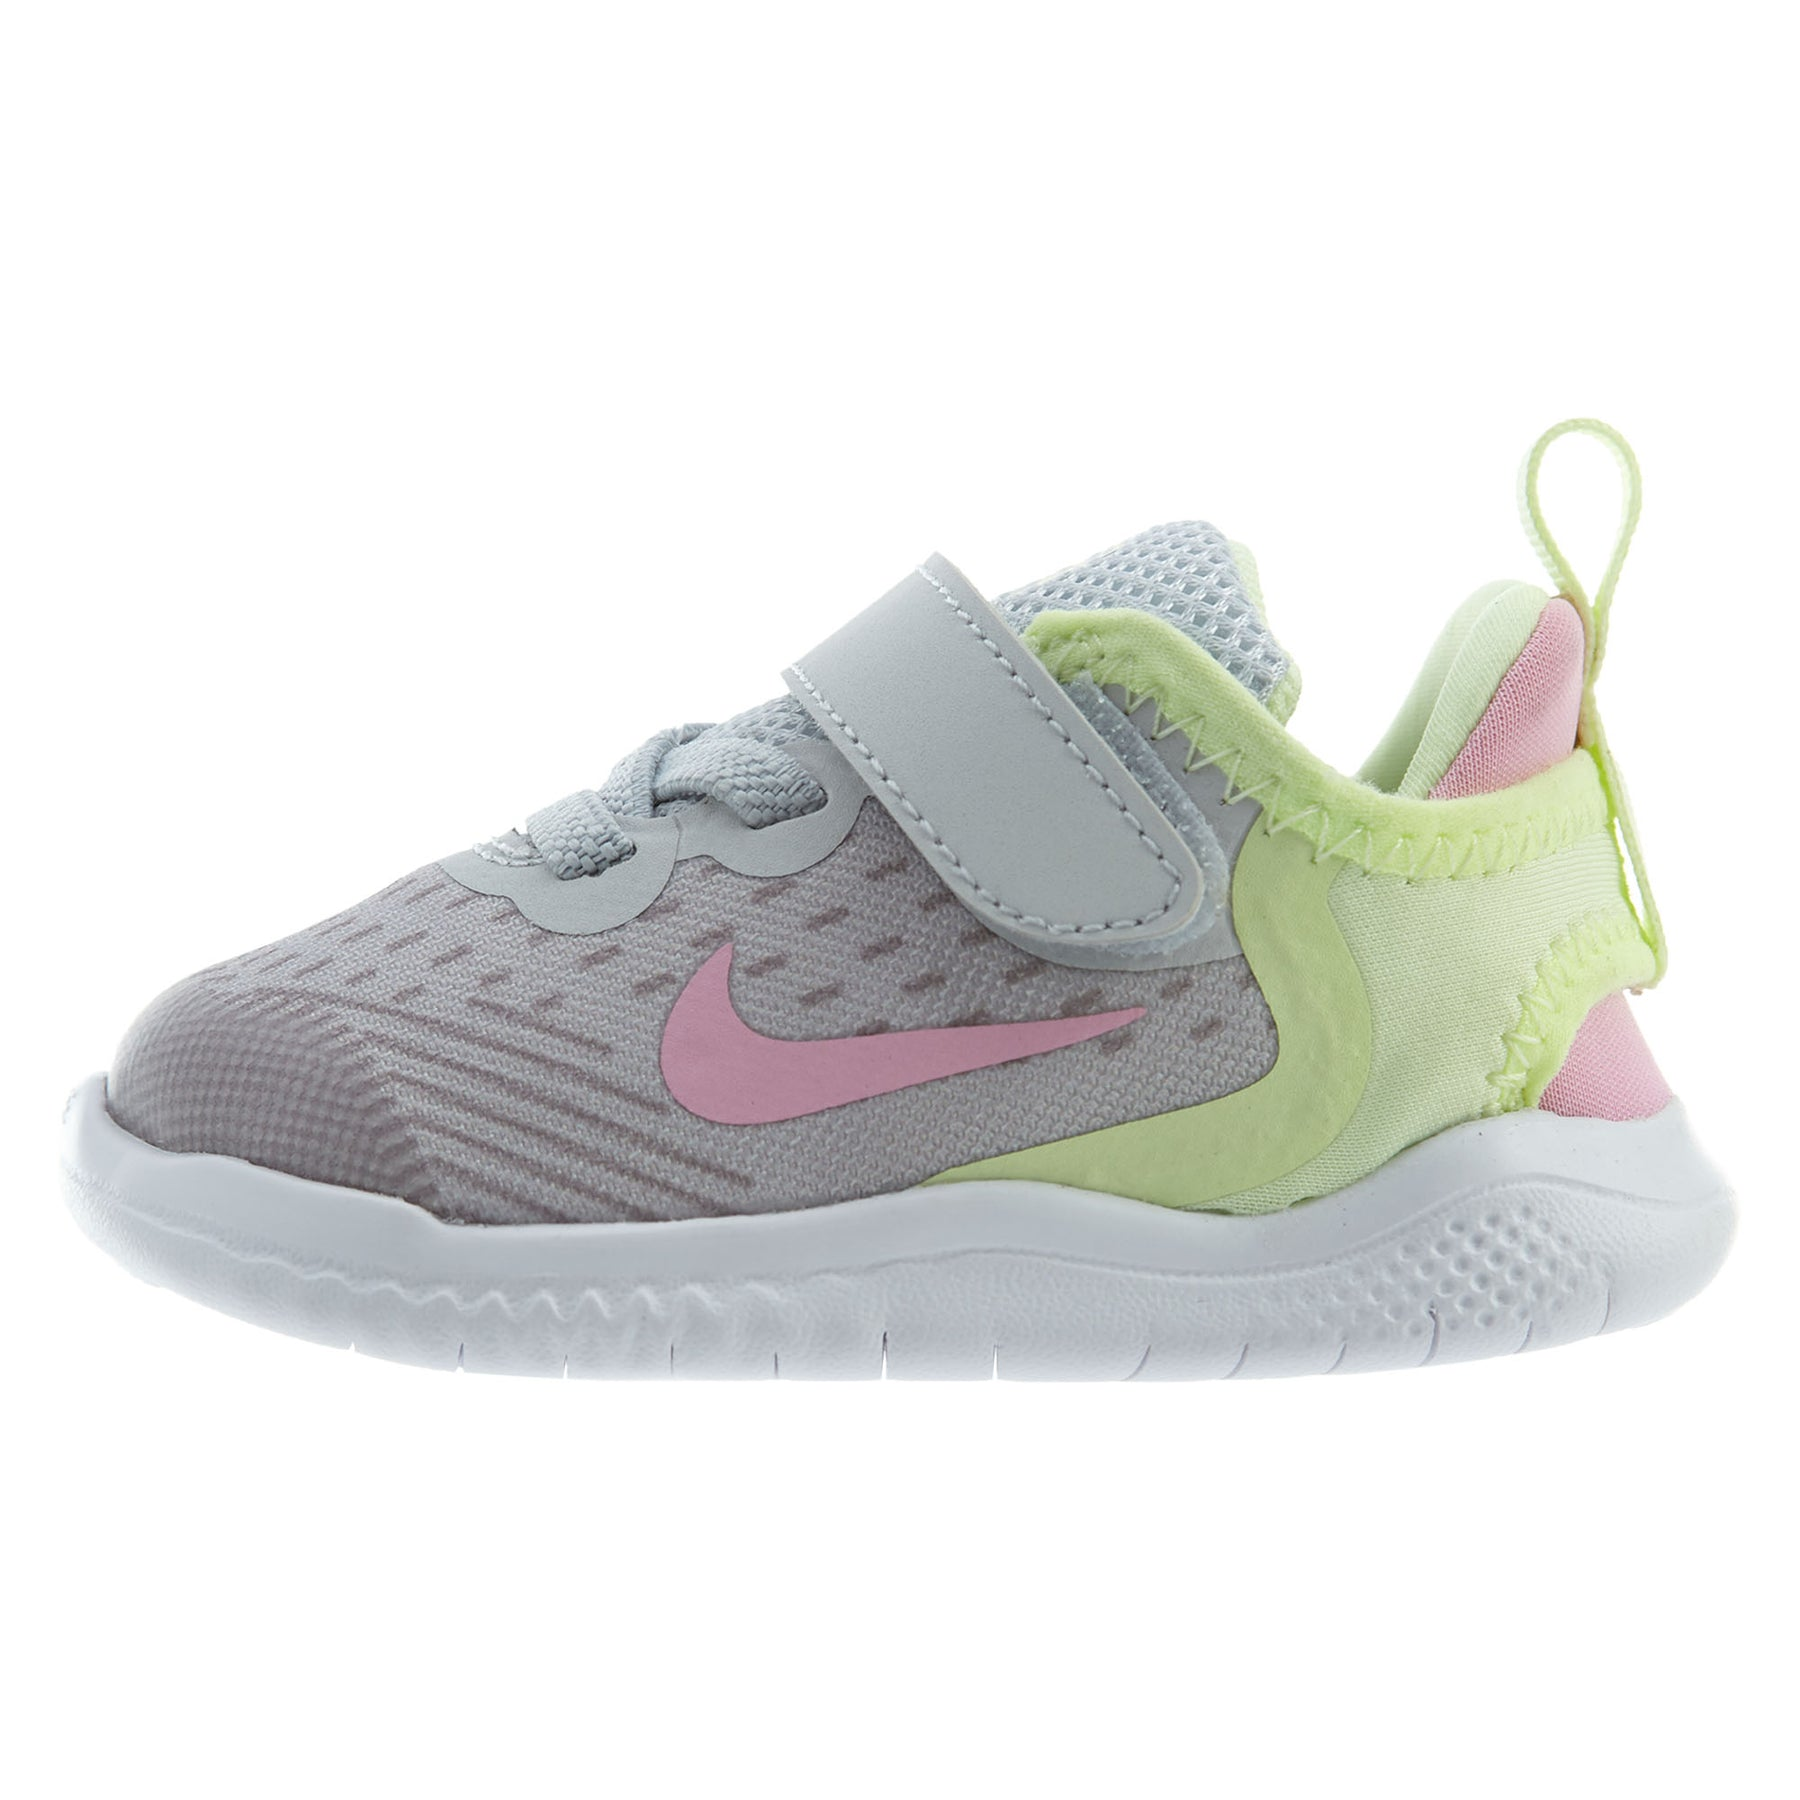 76579a22d8ae5 Nike Free Rn 2018 Toddlers Style   Ah3456-002 – NY Tent Sale